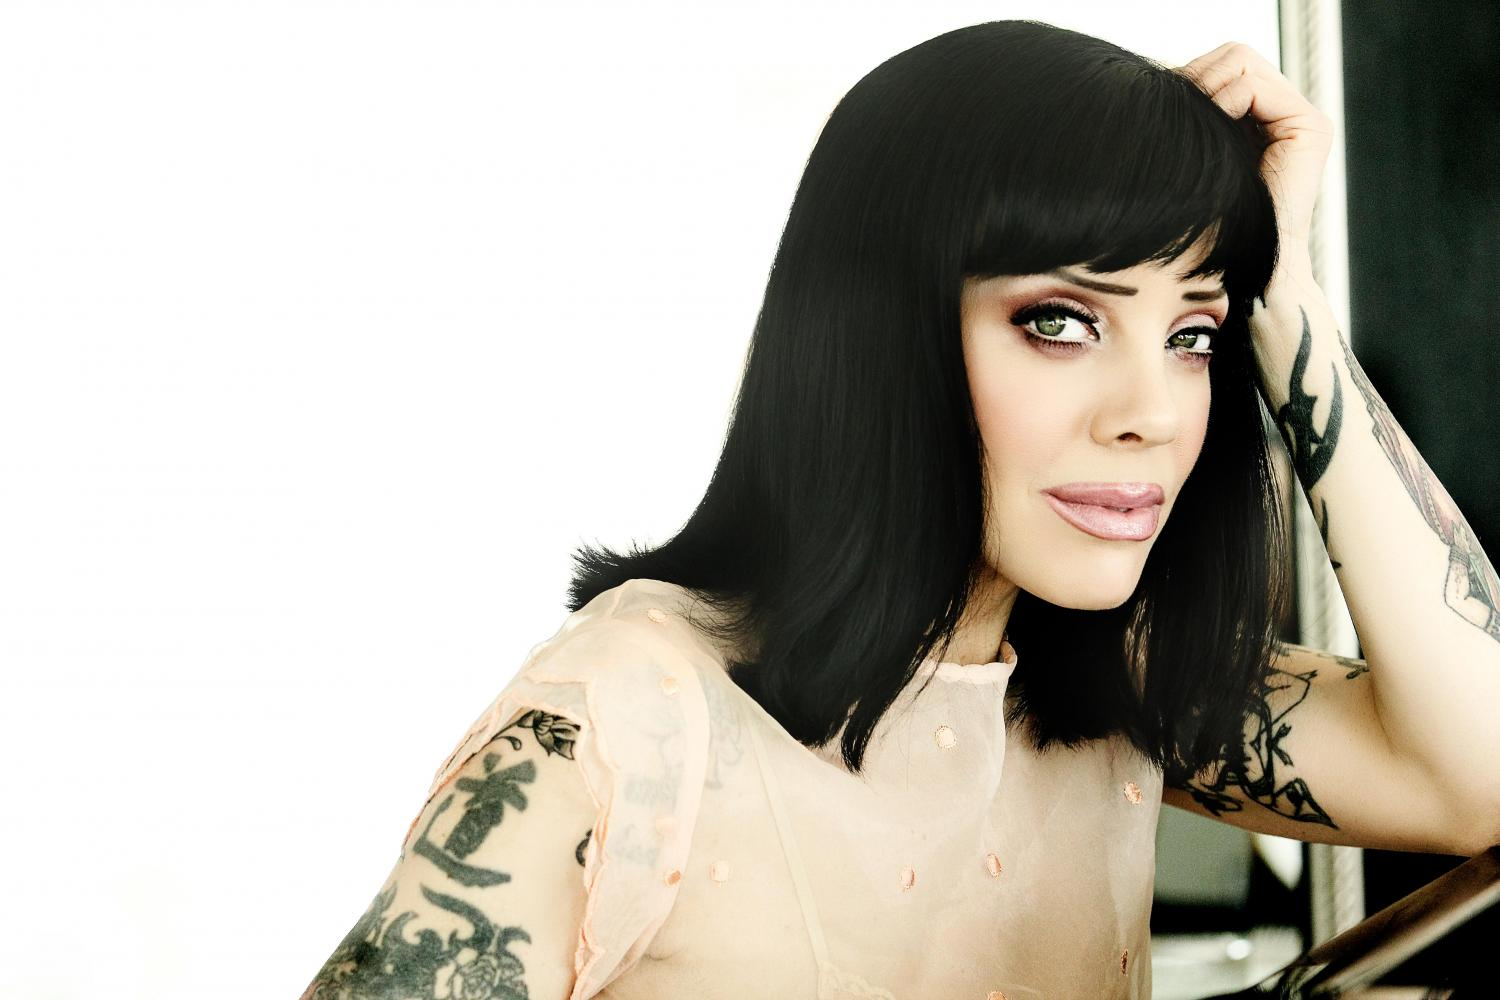 Bif Naked Releases New Jim Music Video - Independent